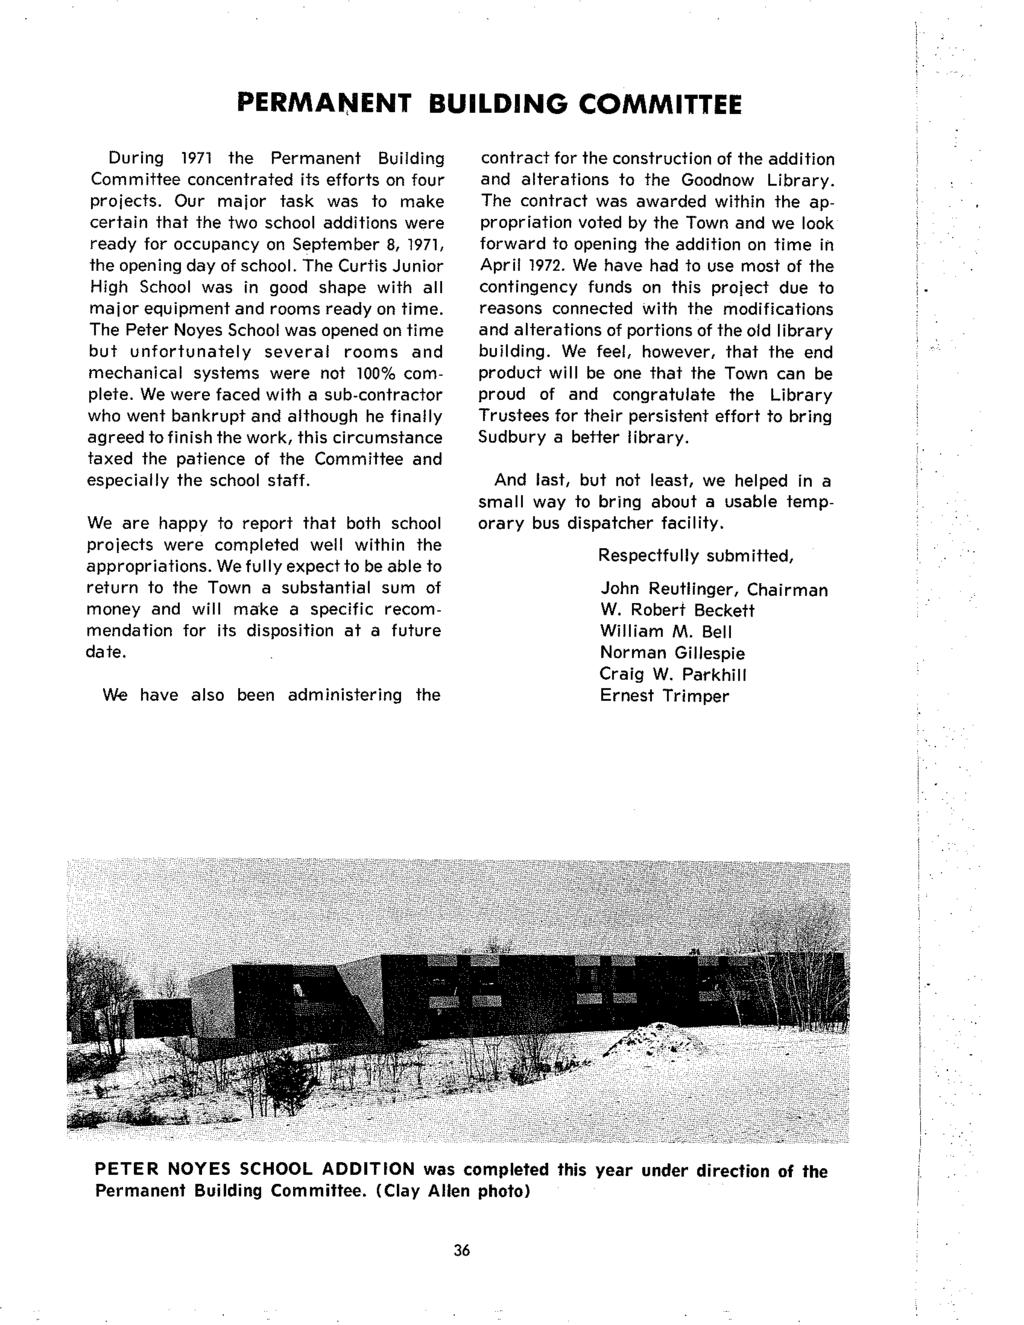 PERMA~ENT BUILDING COMMITTEE During 1971 the Permanent Building Committee concentrated its efforts on four projects.